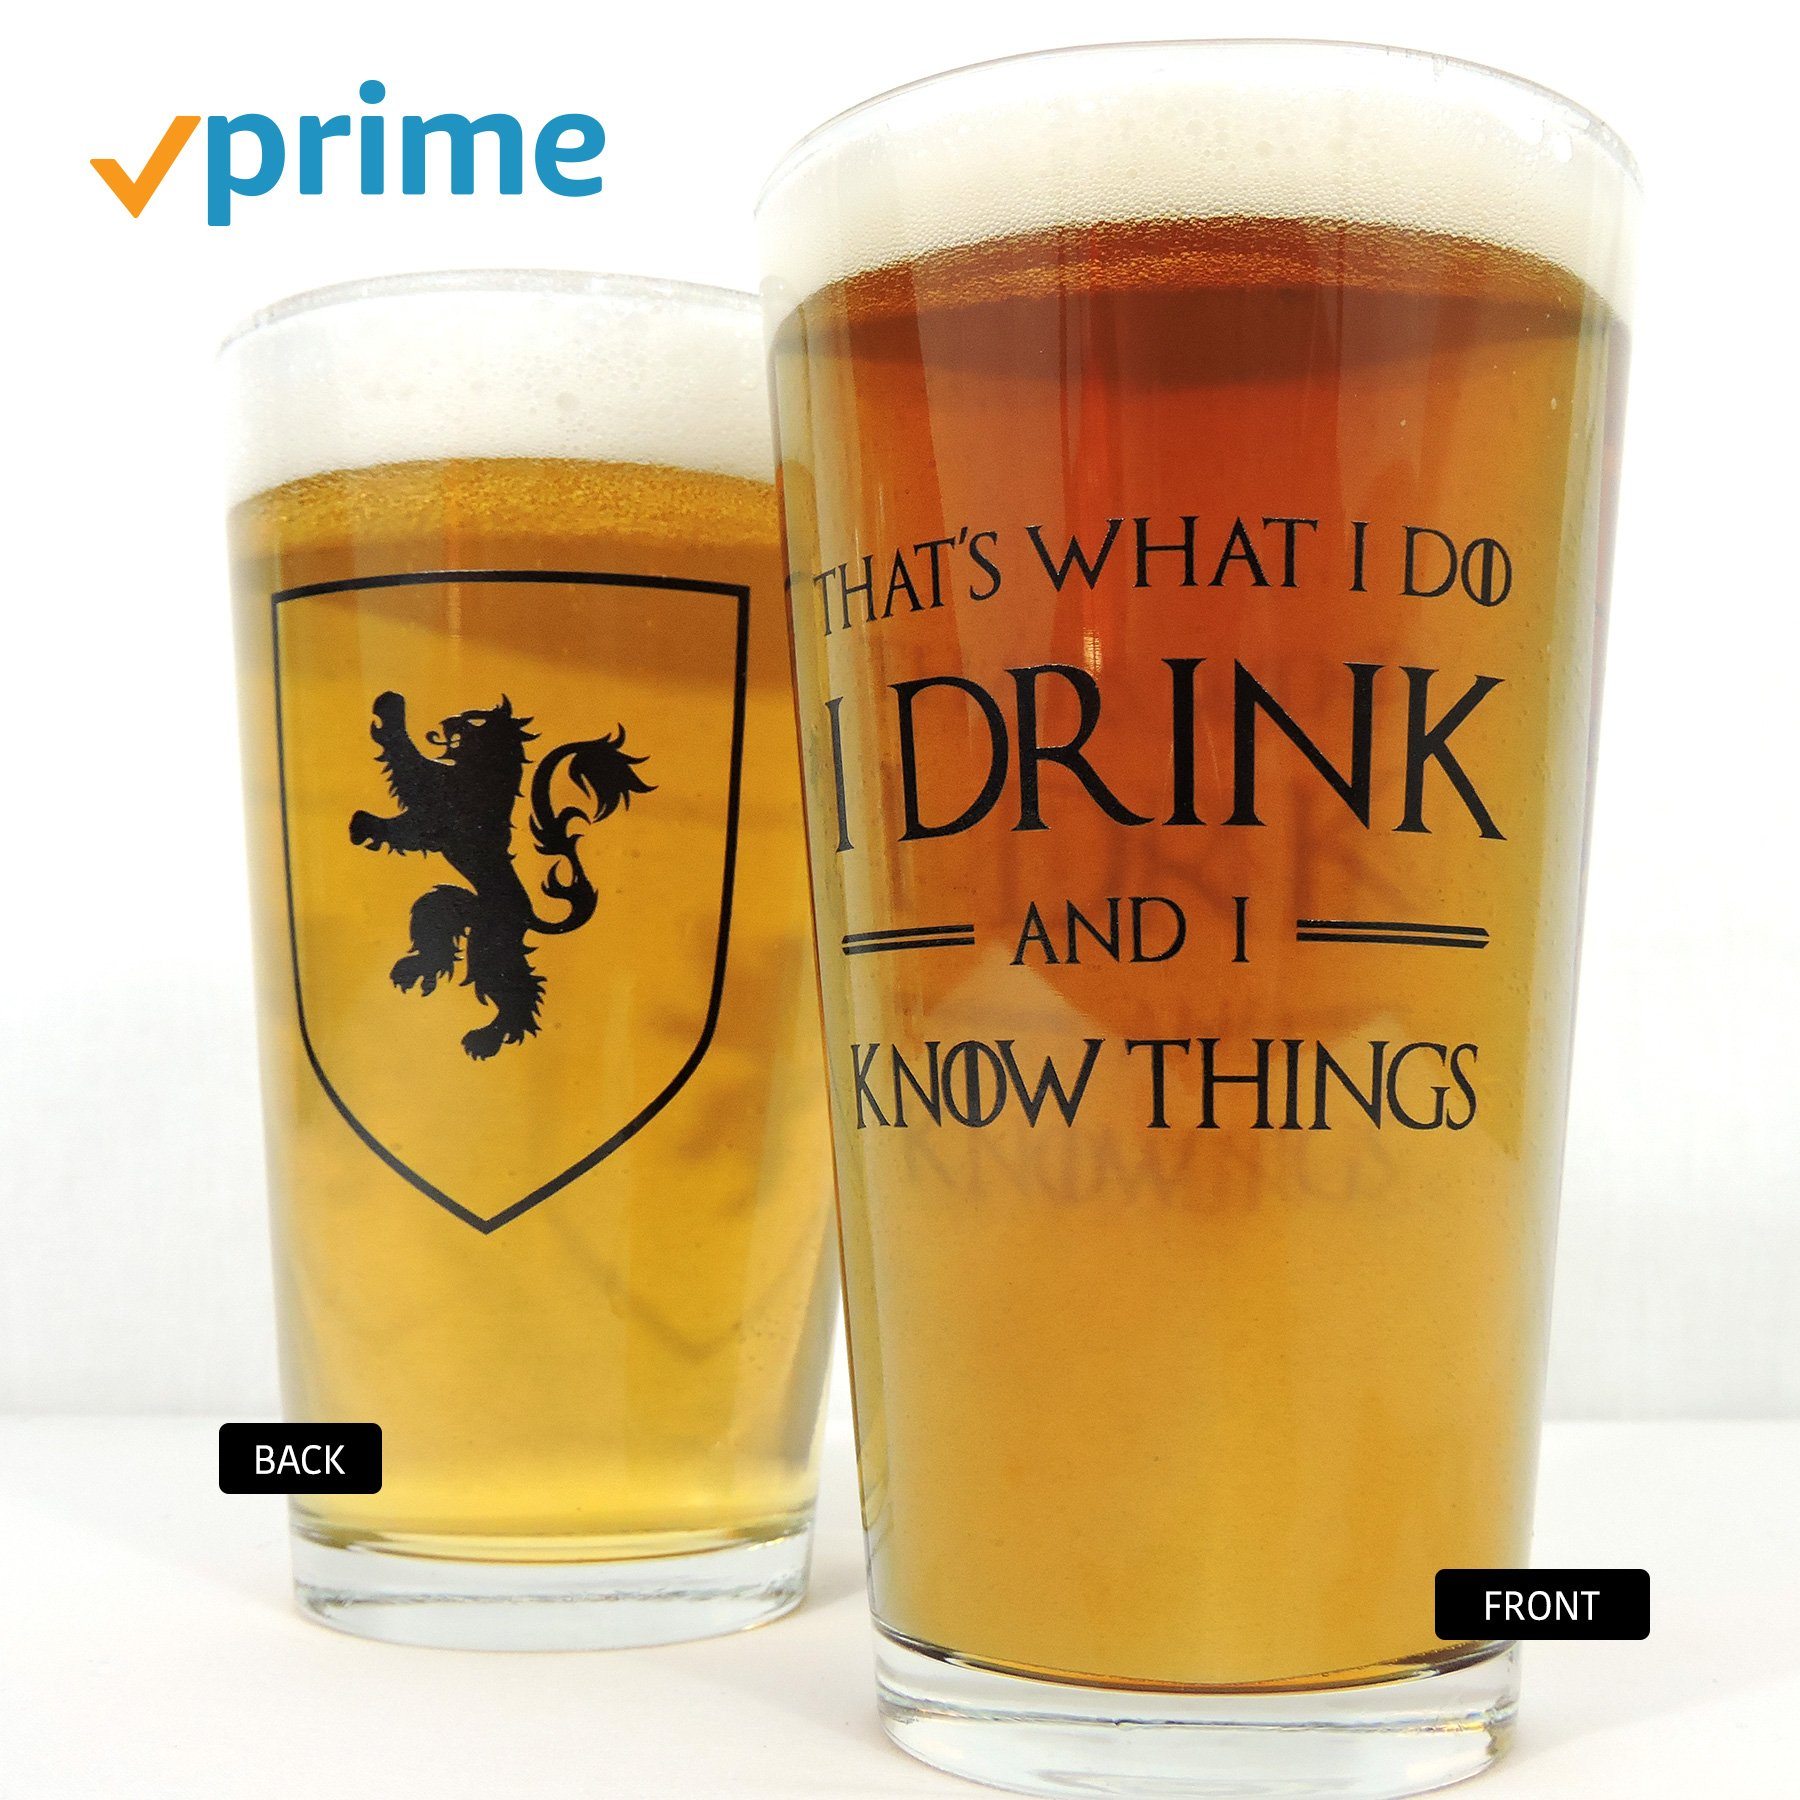 I Drink and I Know Things: Beer Glass - Perfect gift for Game of Thrones fans - Tyrion Lannister Mug Cup - 16oz - Made in USA